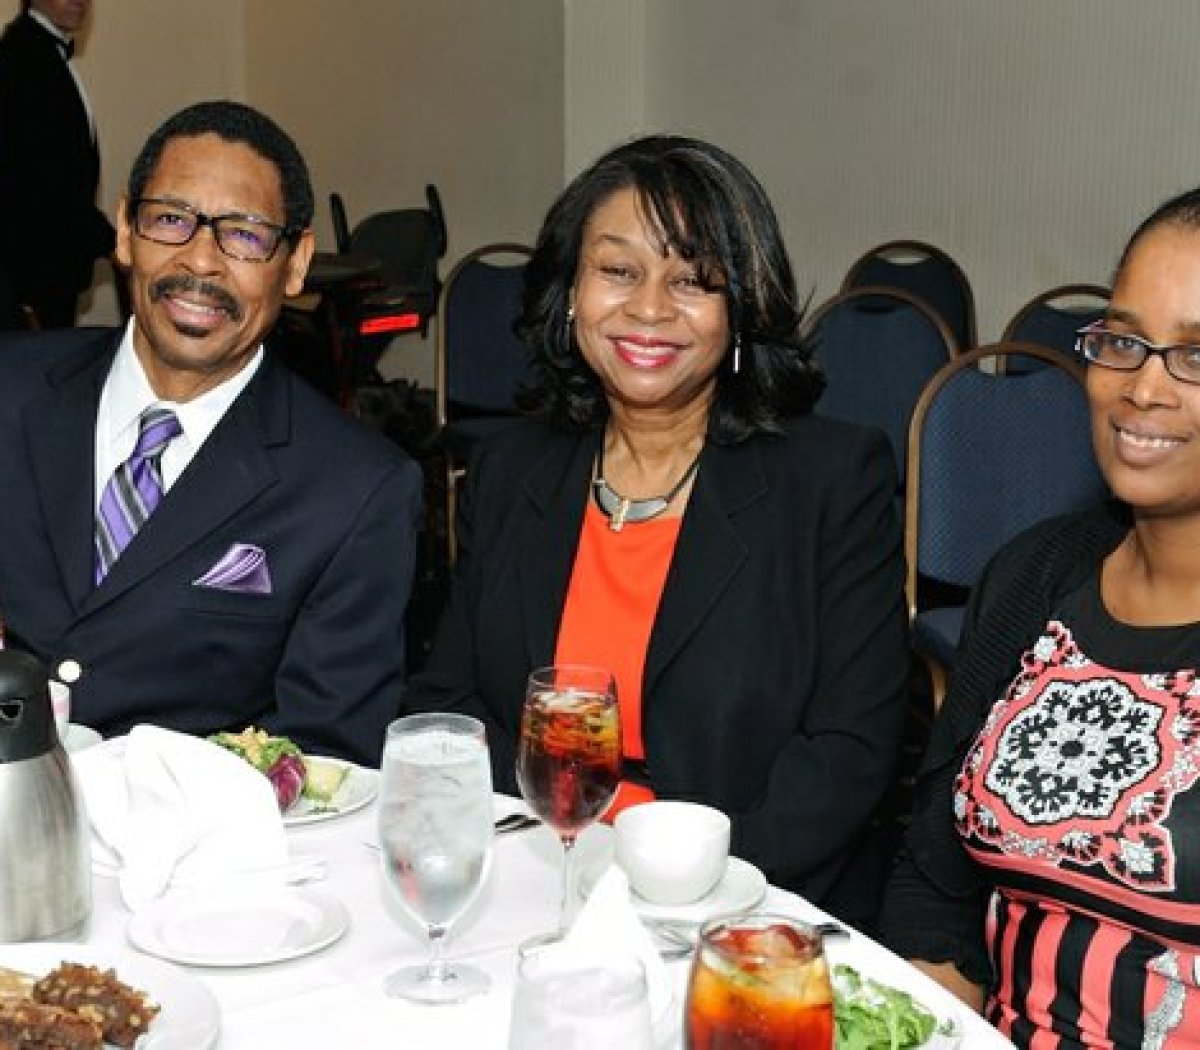 Clergy from Greater Mt. Calvary Church attend the Sixth Annual Stateswomen for Justice Luncheon at the National Press Club, Thursday, March 31, 2016 in Northwest. /Photo by Patricia Little @5feet2